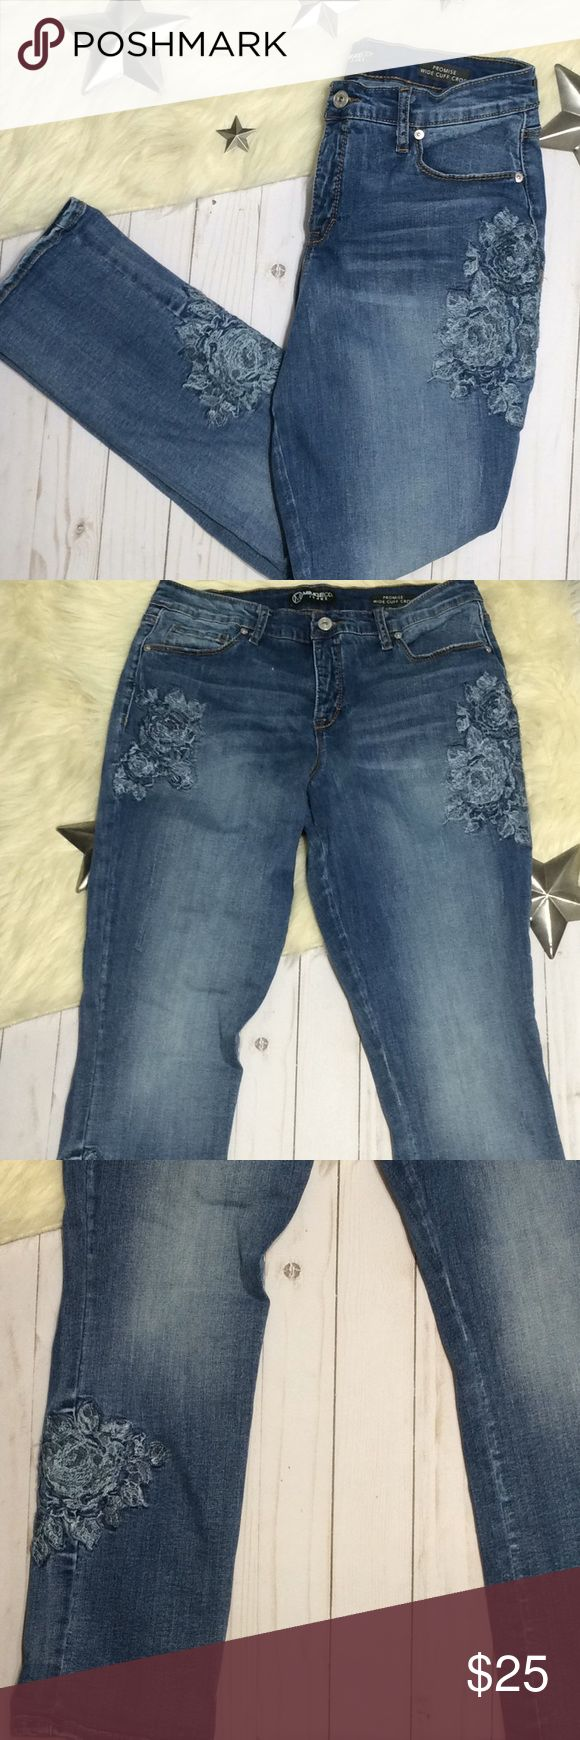 """Miraclebody jeans floral embroidery promise crop Miraclebody by miraclesuit jeans in their Promise wide cuff crop style. Extra slimming and stretchy. They have an embroidery rose design stitched in blue on the thighs and leg. Factory distressing and whiskering.  Great condition, but does have some light wear on the hems.  APPROX MEASUREMENTS Waist, laid flat: 15"""", lots of stretch Rise: 10"""" Inseam: 27.25"""" Miraclesuit Jeans Ankle & Cropped"""